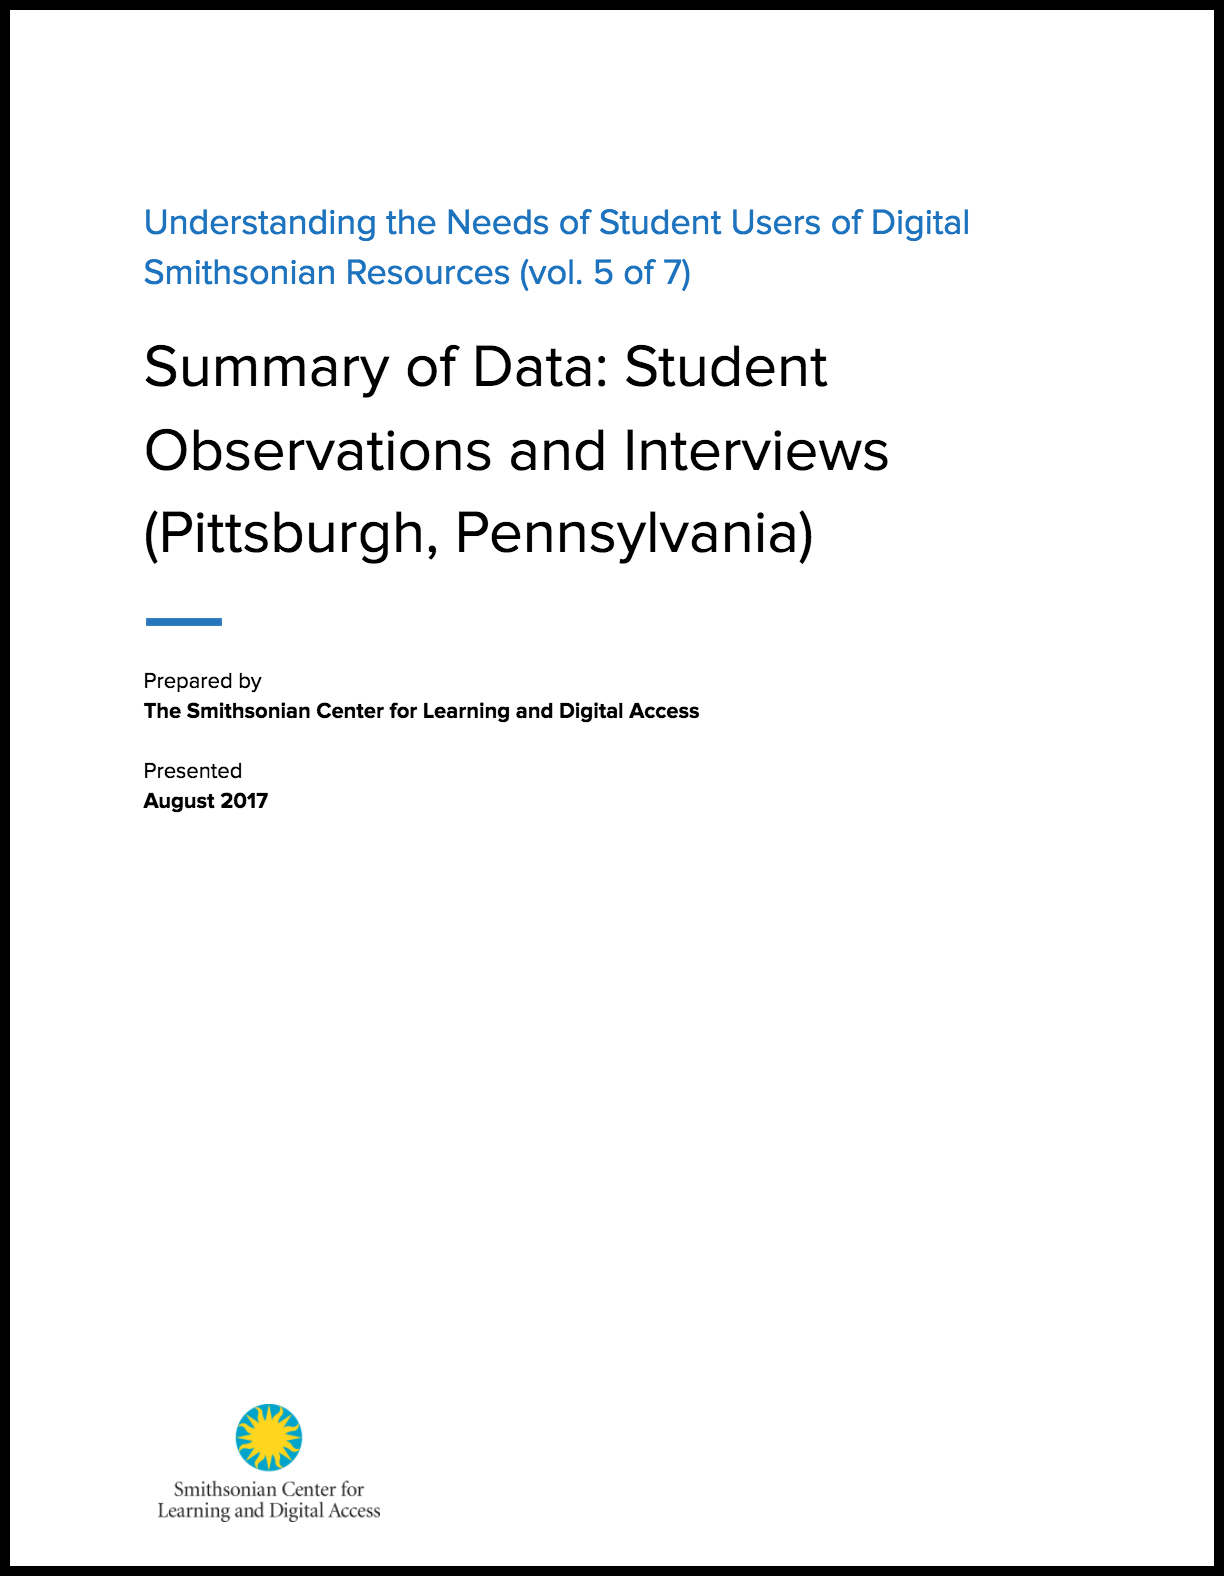 Summary of Data: Student Observations and Interviews (Pittsburgh, Pennsylvania)